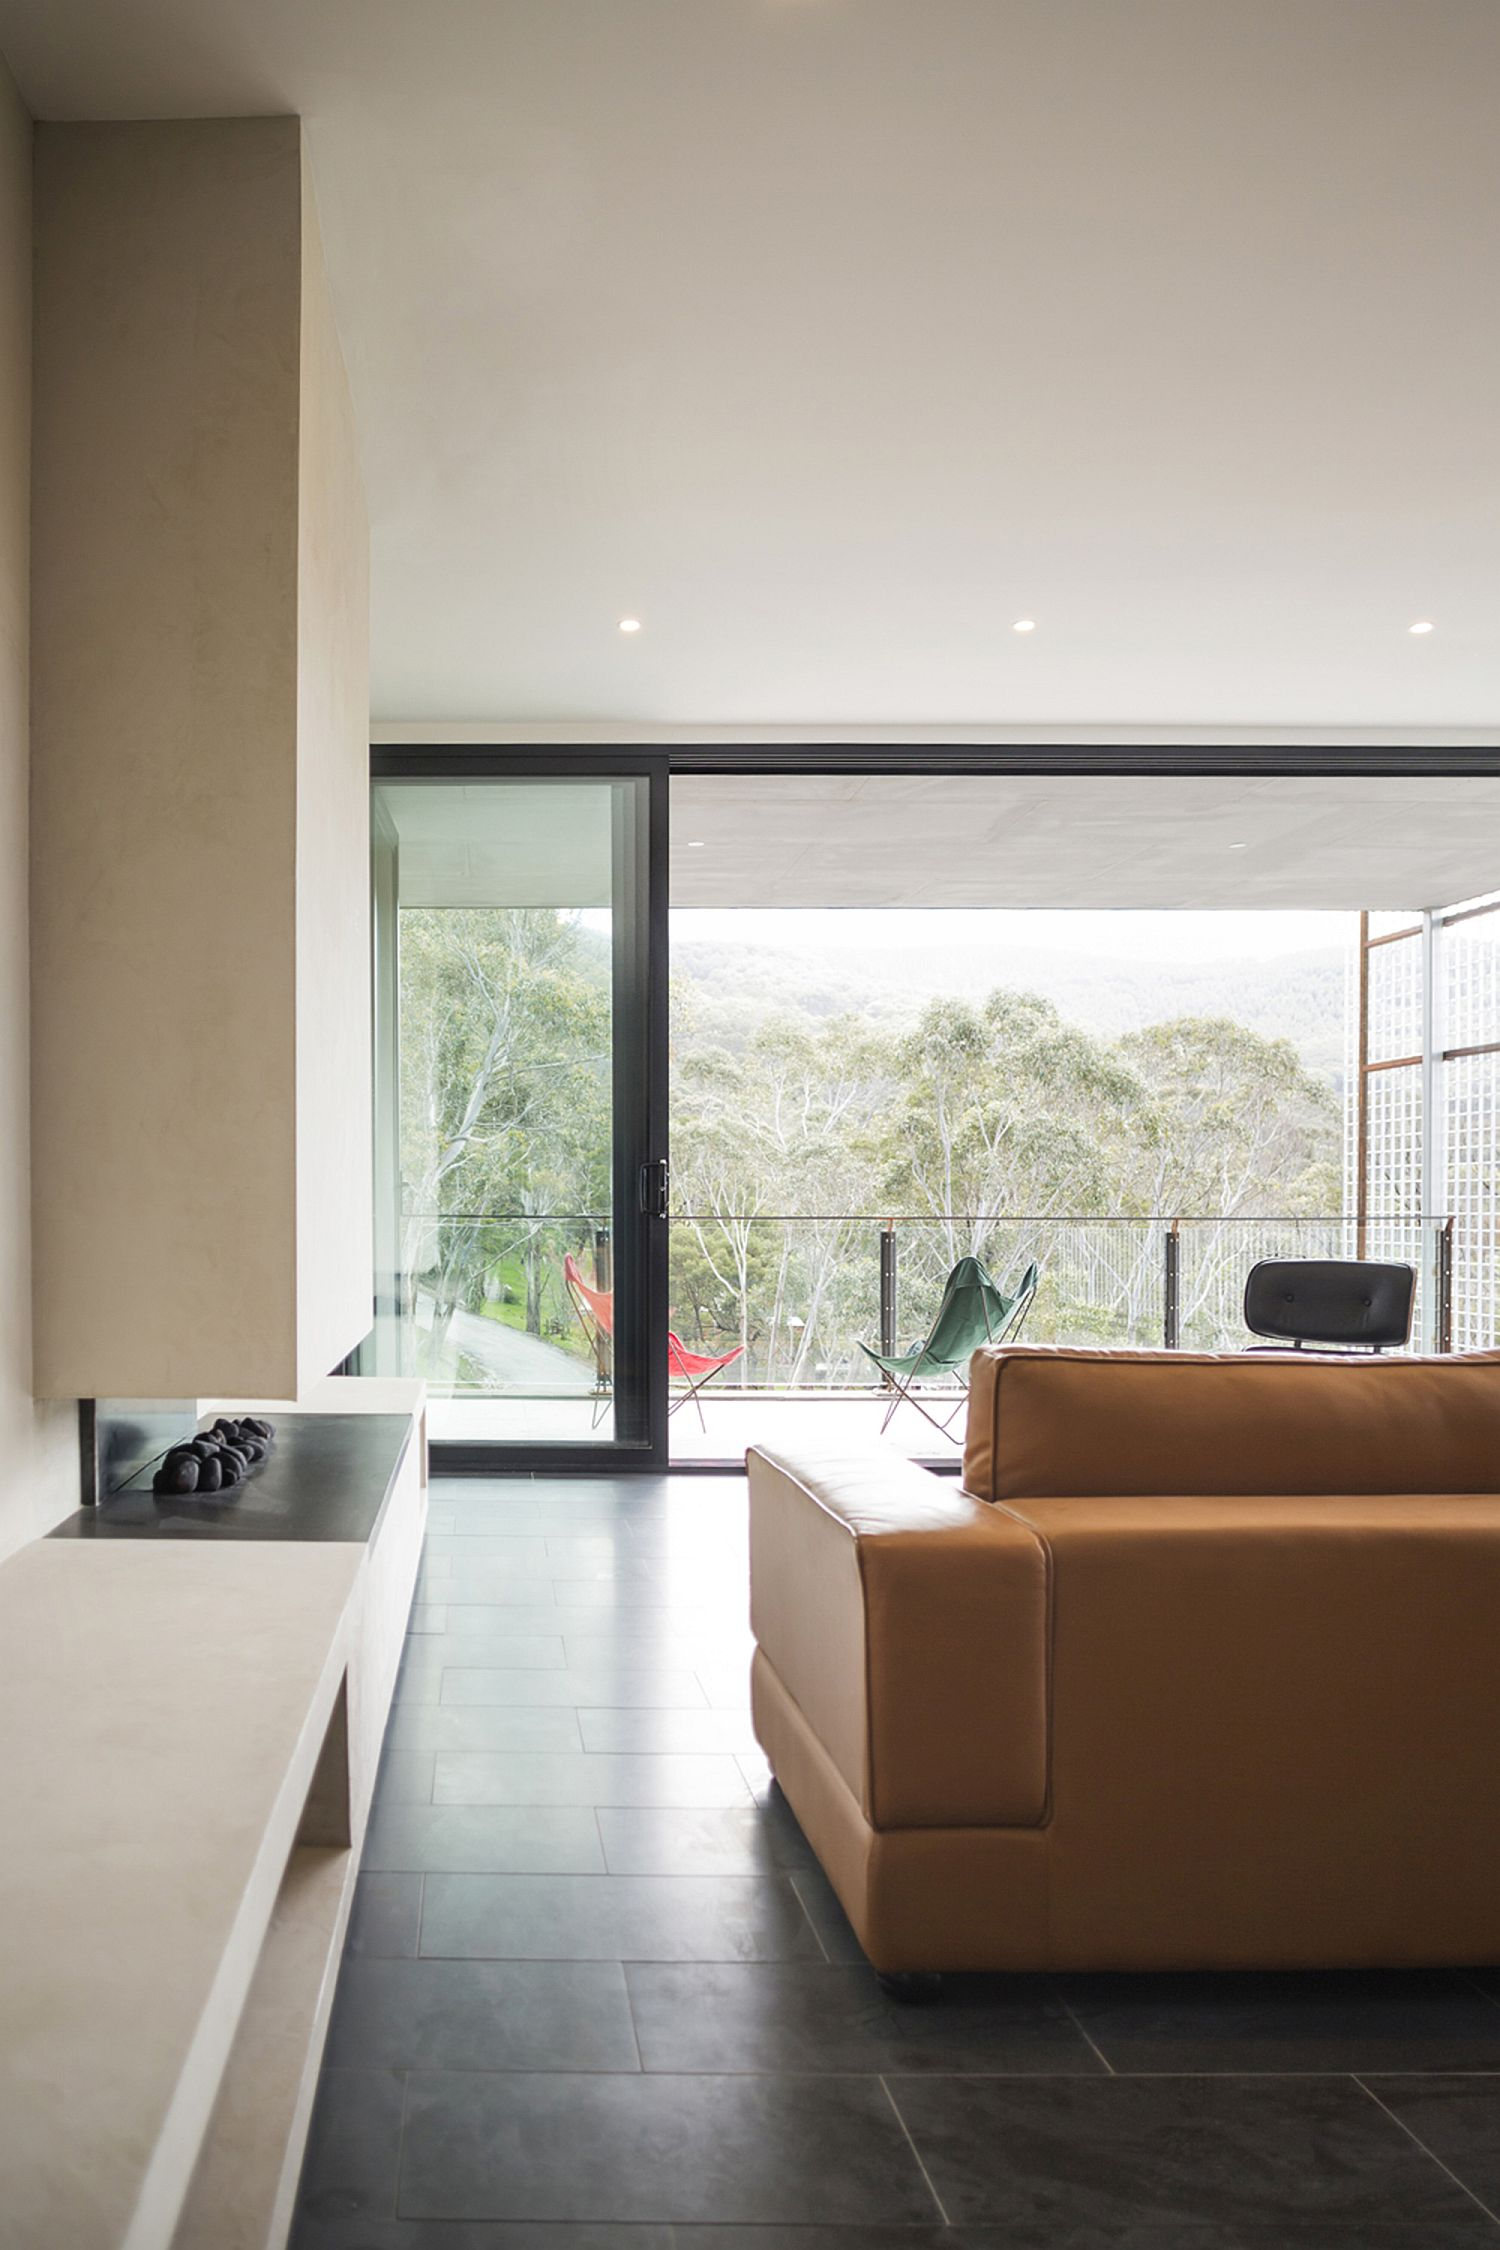 Living room with a view of the Aussie bushland and ample natural light